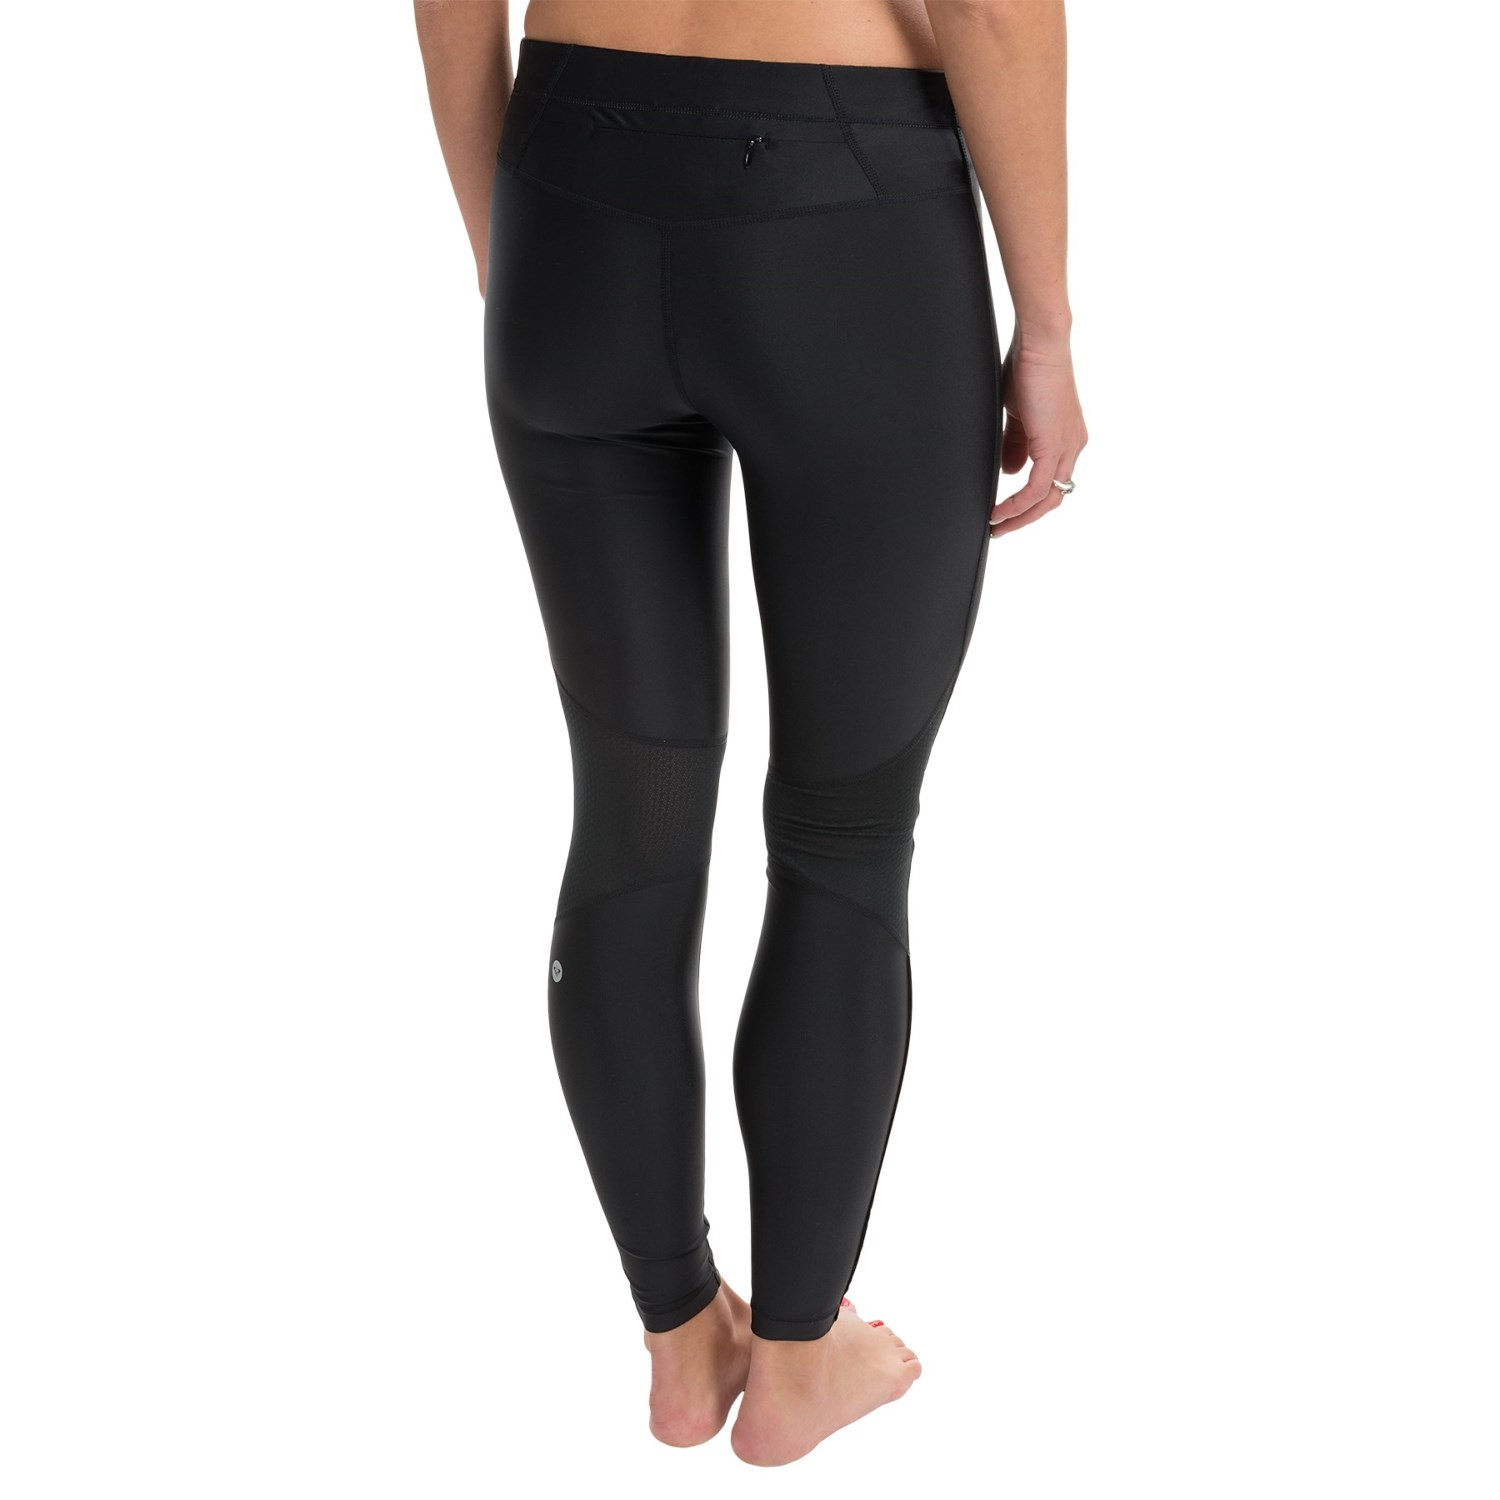 Original Shop Home  ISC  ISC Women39s Compression Pants